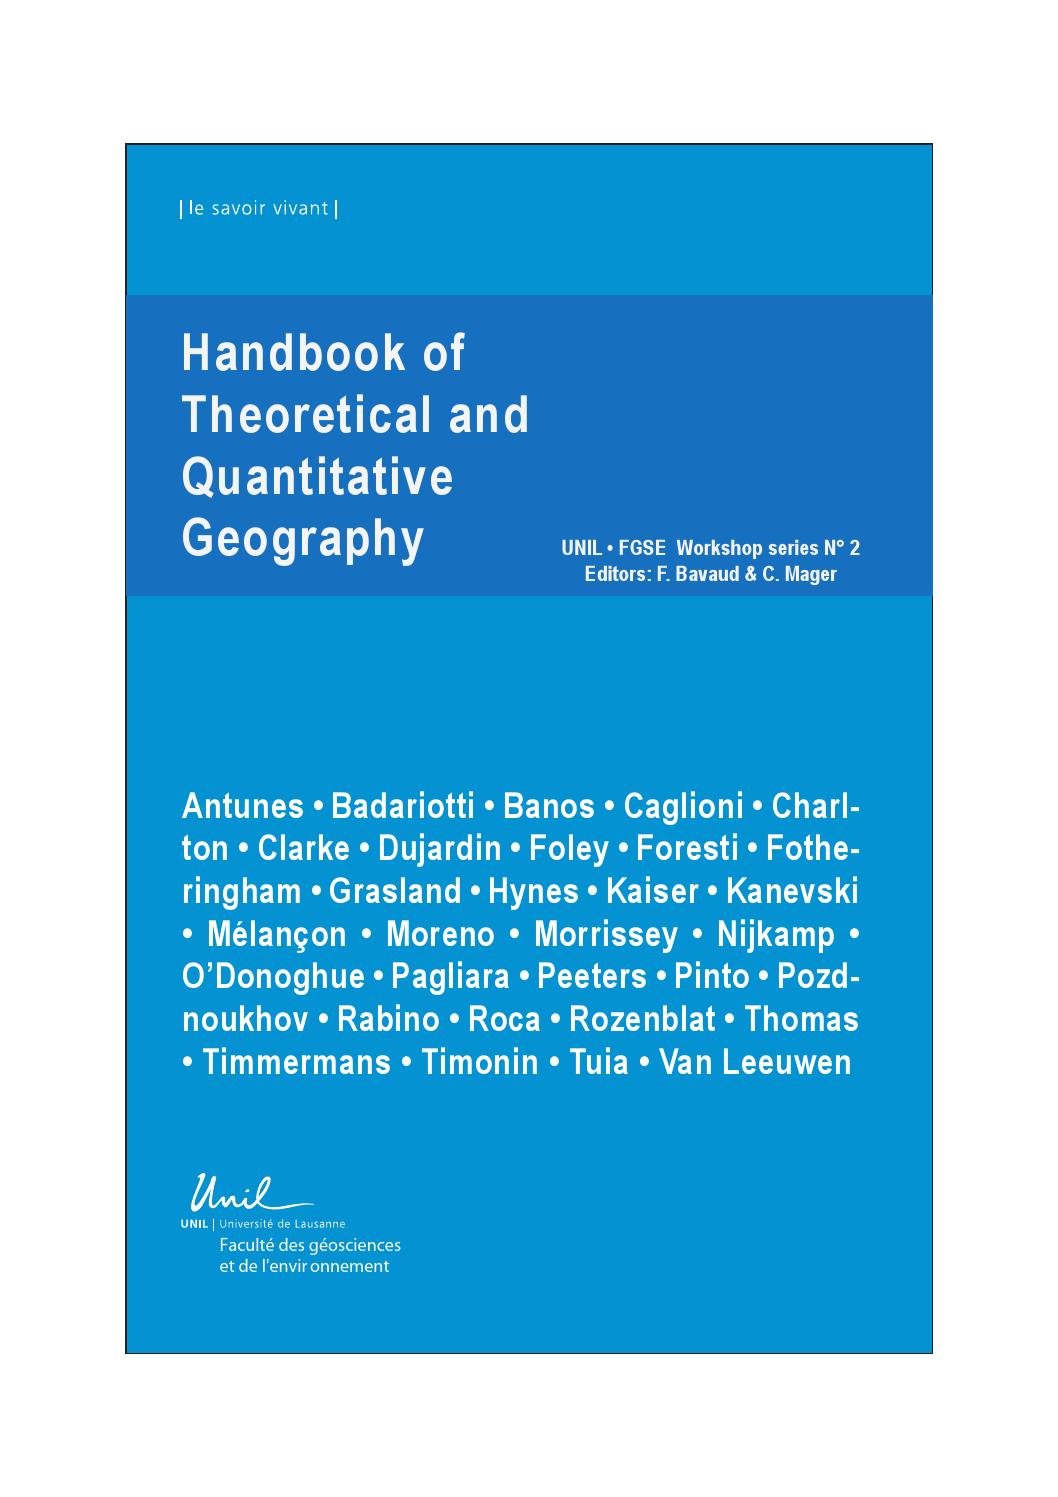 Arte Murano Diego Vidal Handbook Of Theoritical And Quantitative Geography 2009 By